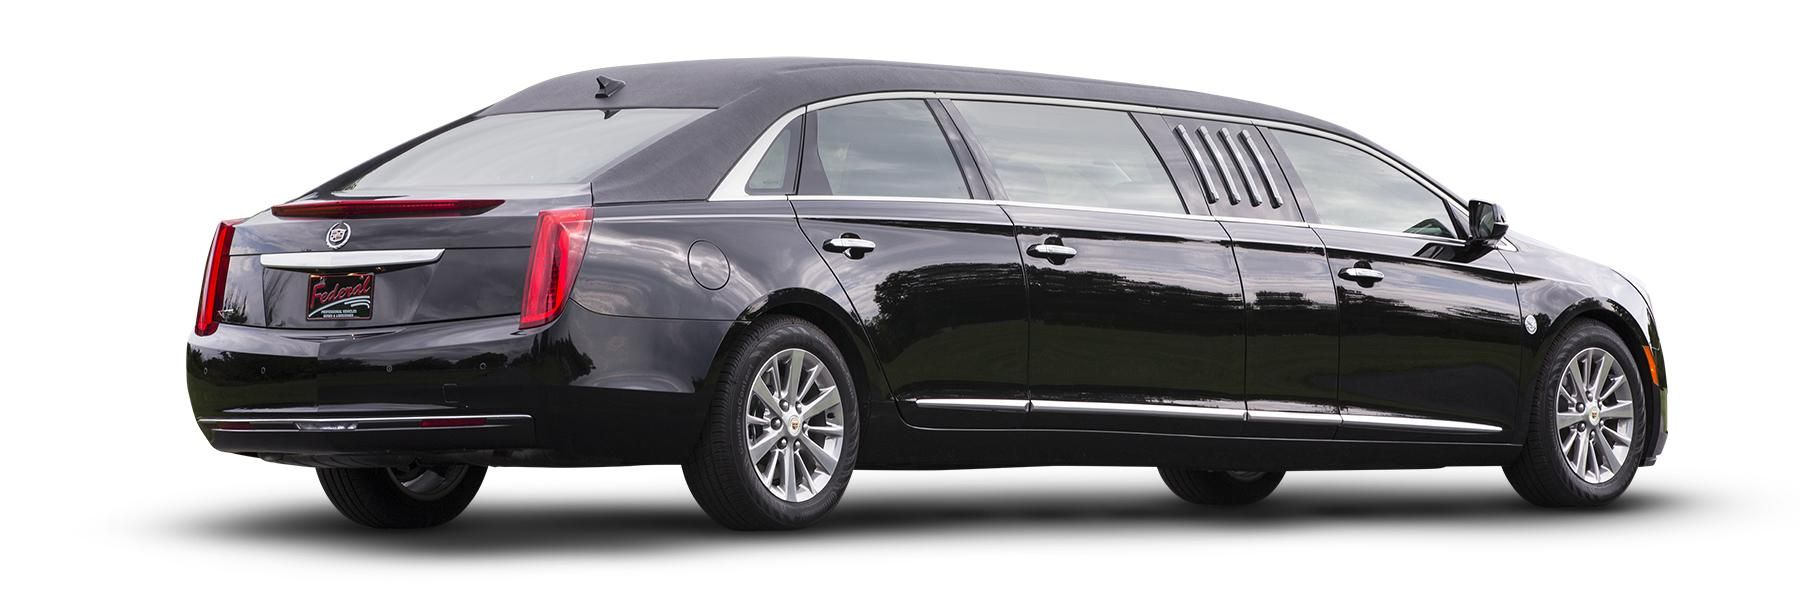 2017 cadillac xts 70 raised roof limousine